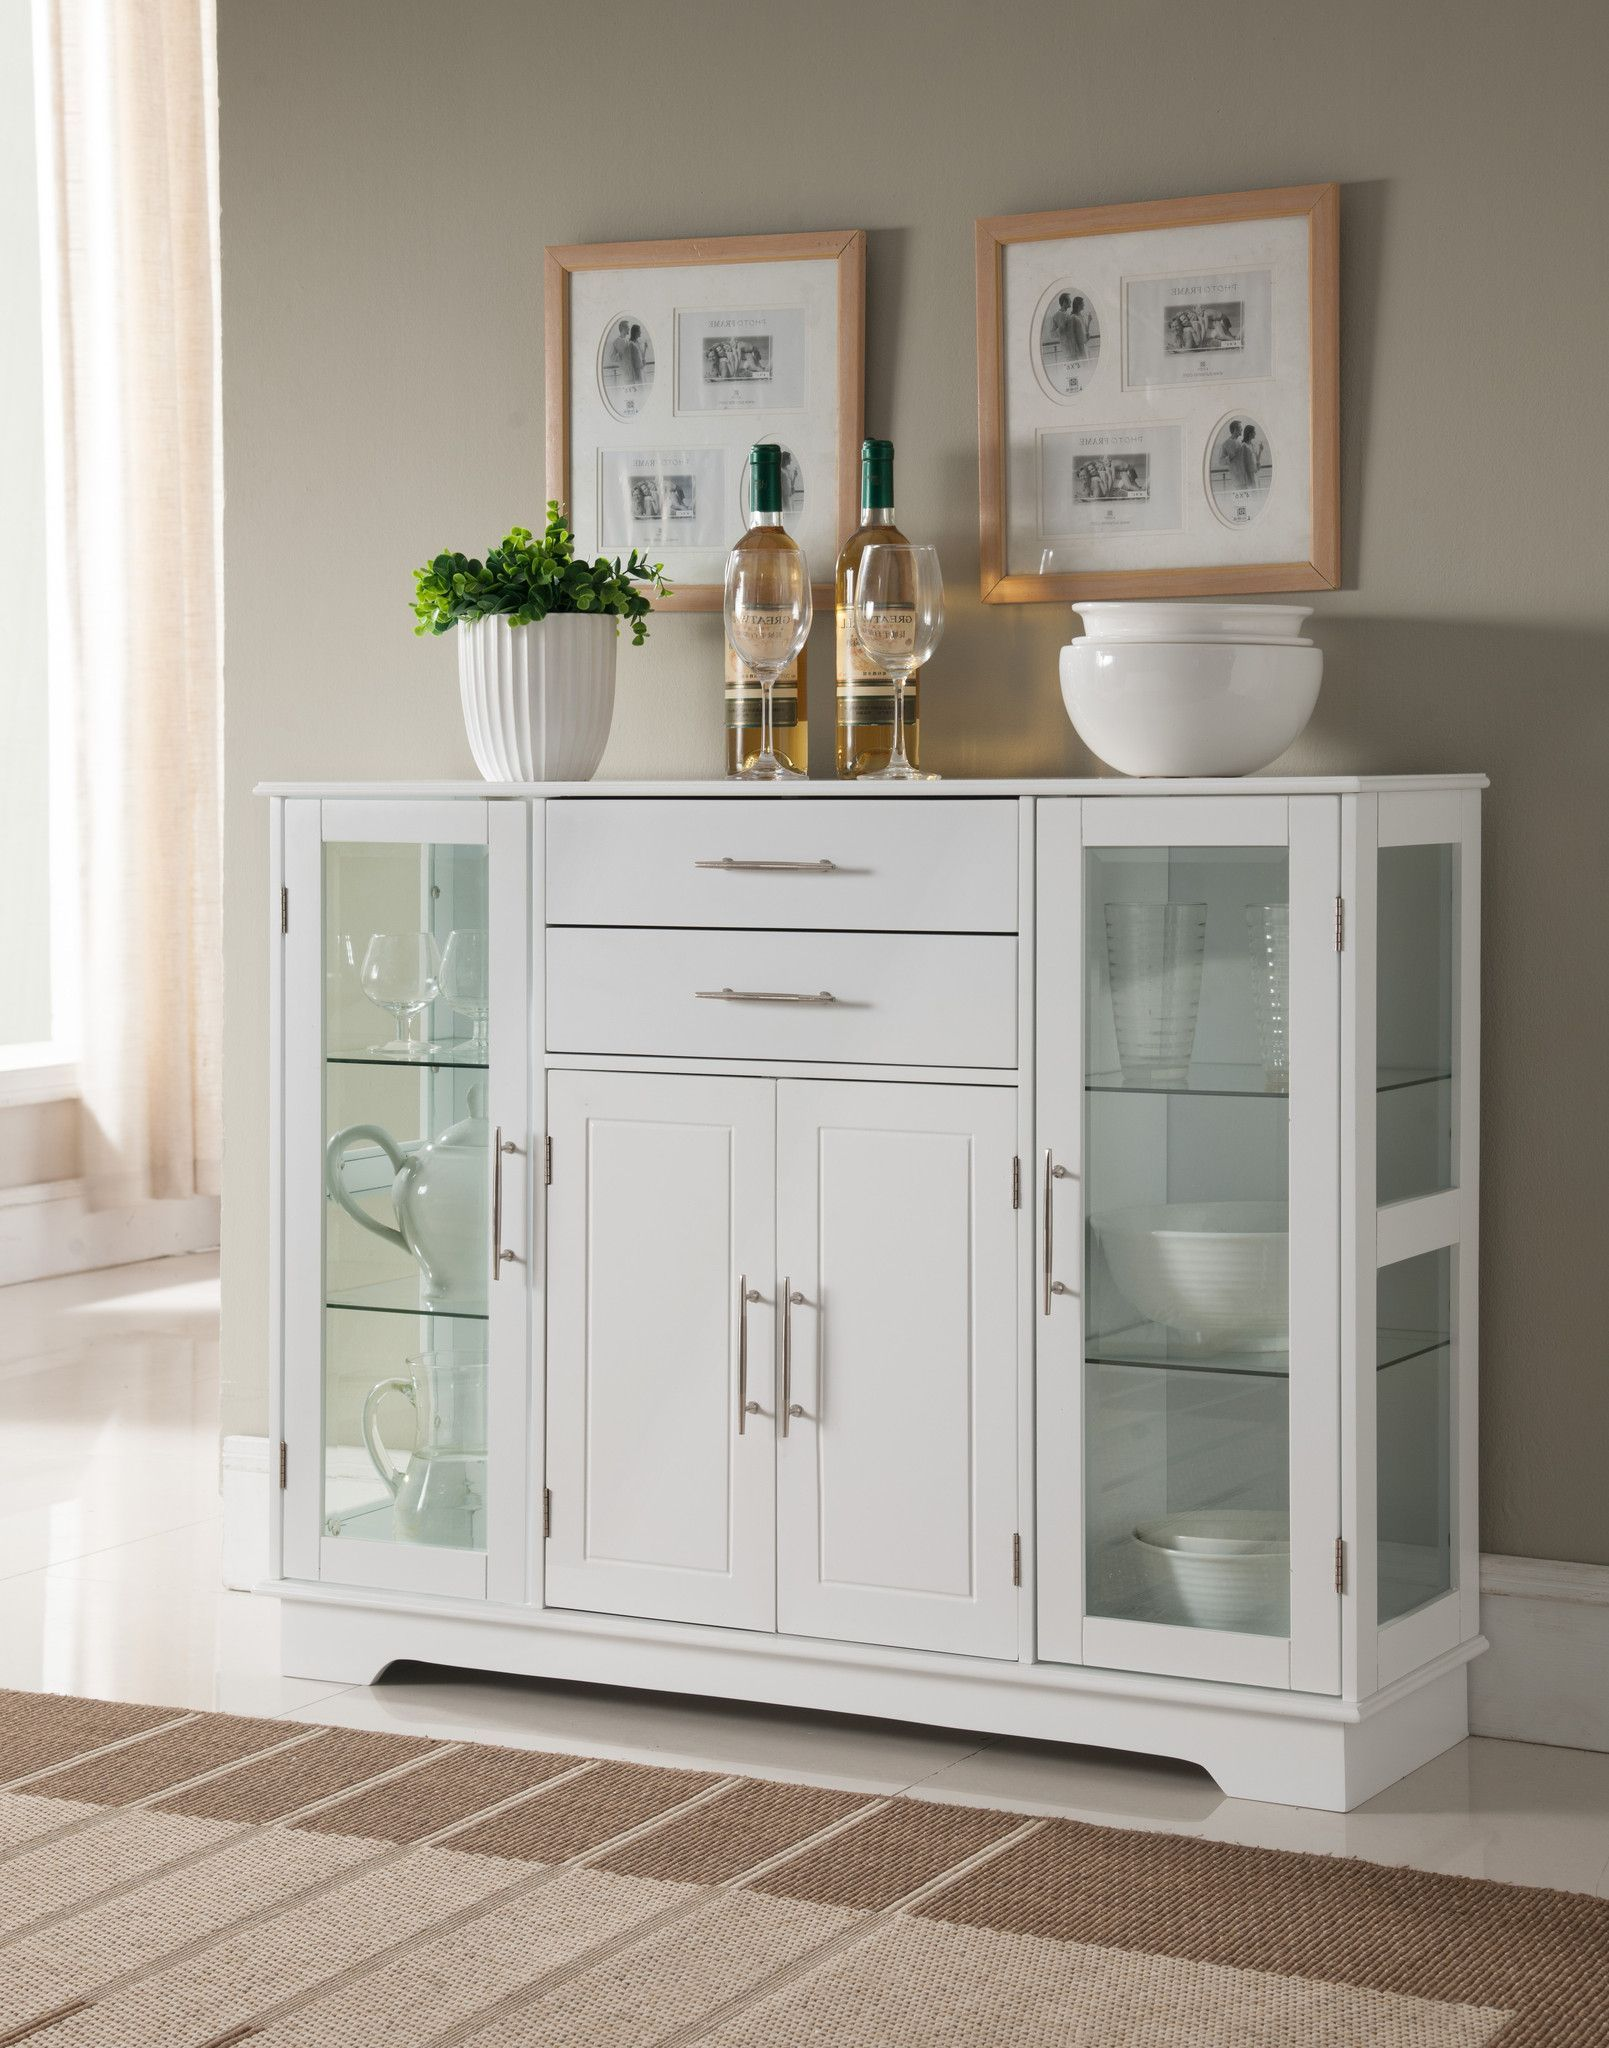 Pilaster Designs - White Wood Kitchen Storage Display Cabinet Buffet With  Glass Doors, Drawers & Storage